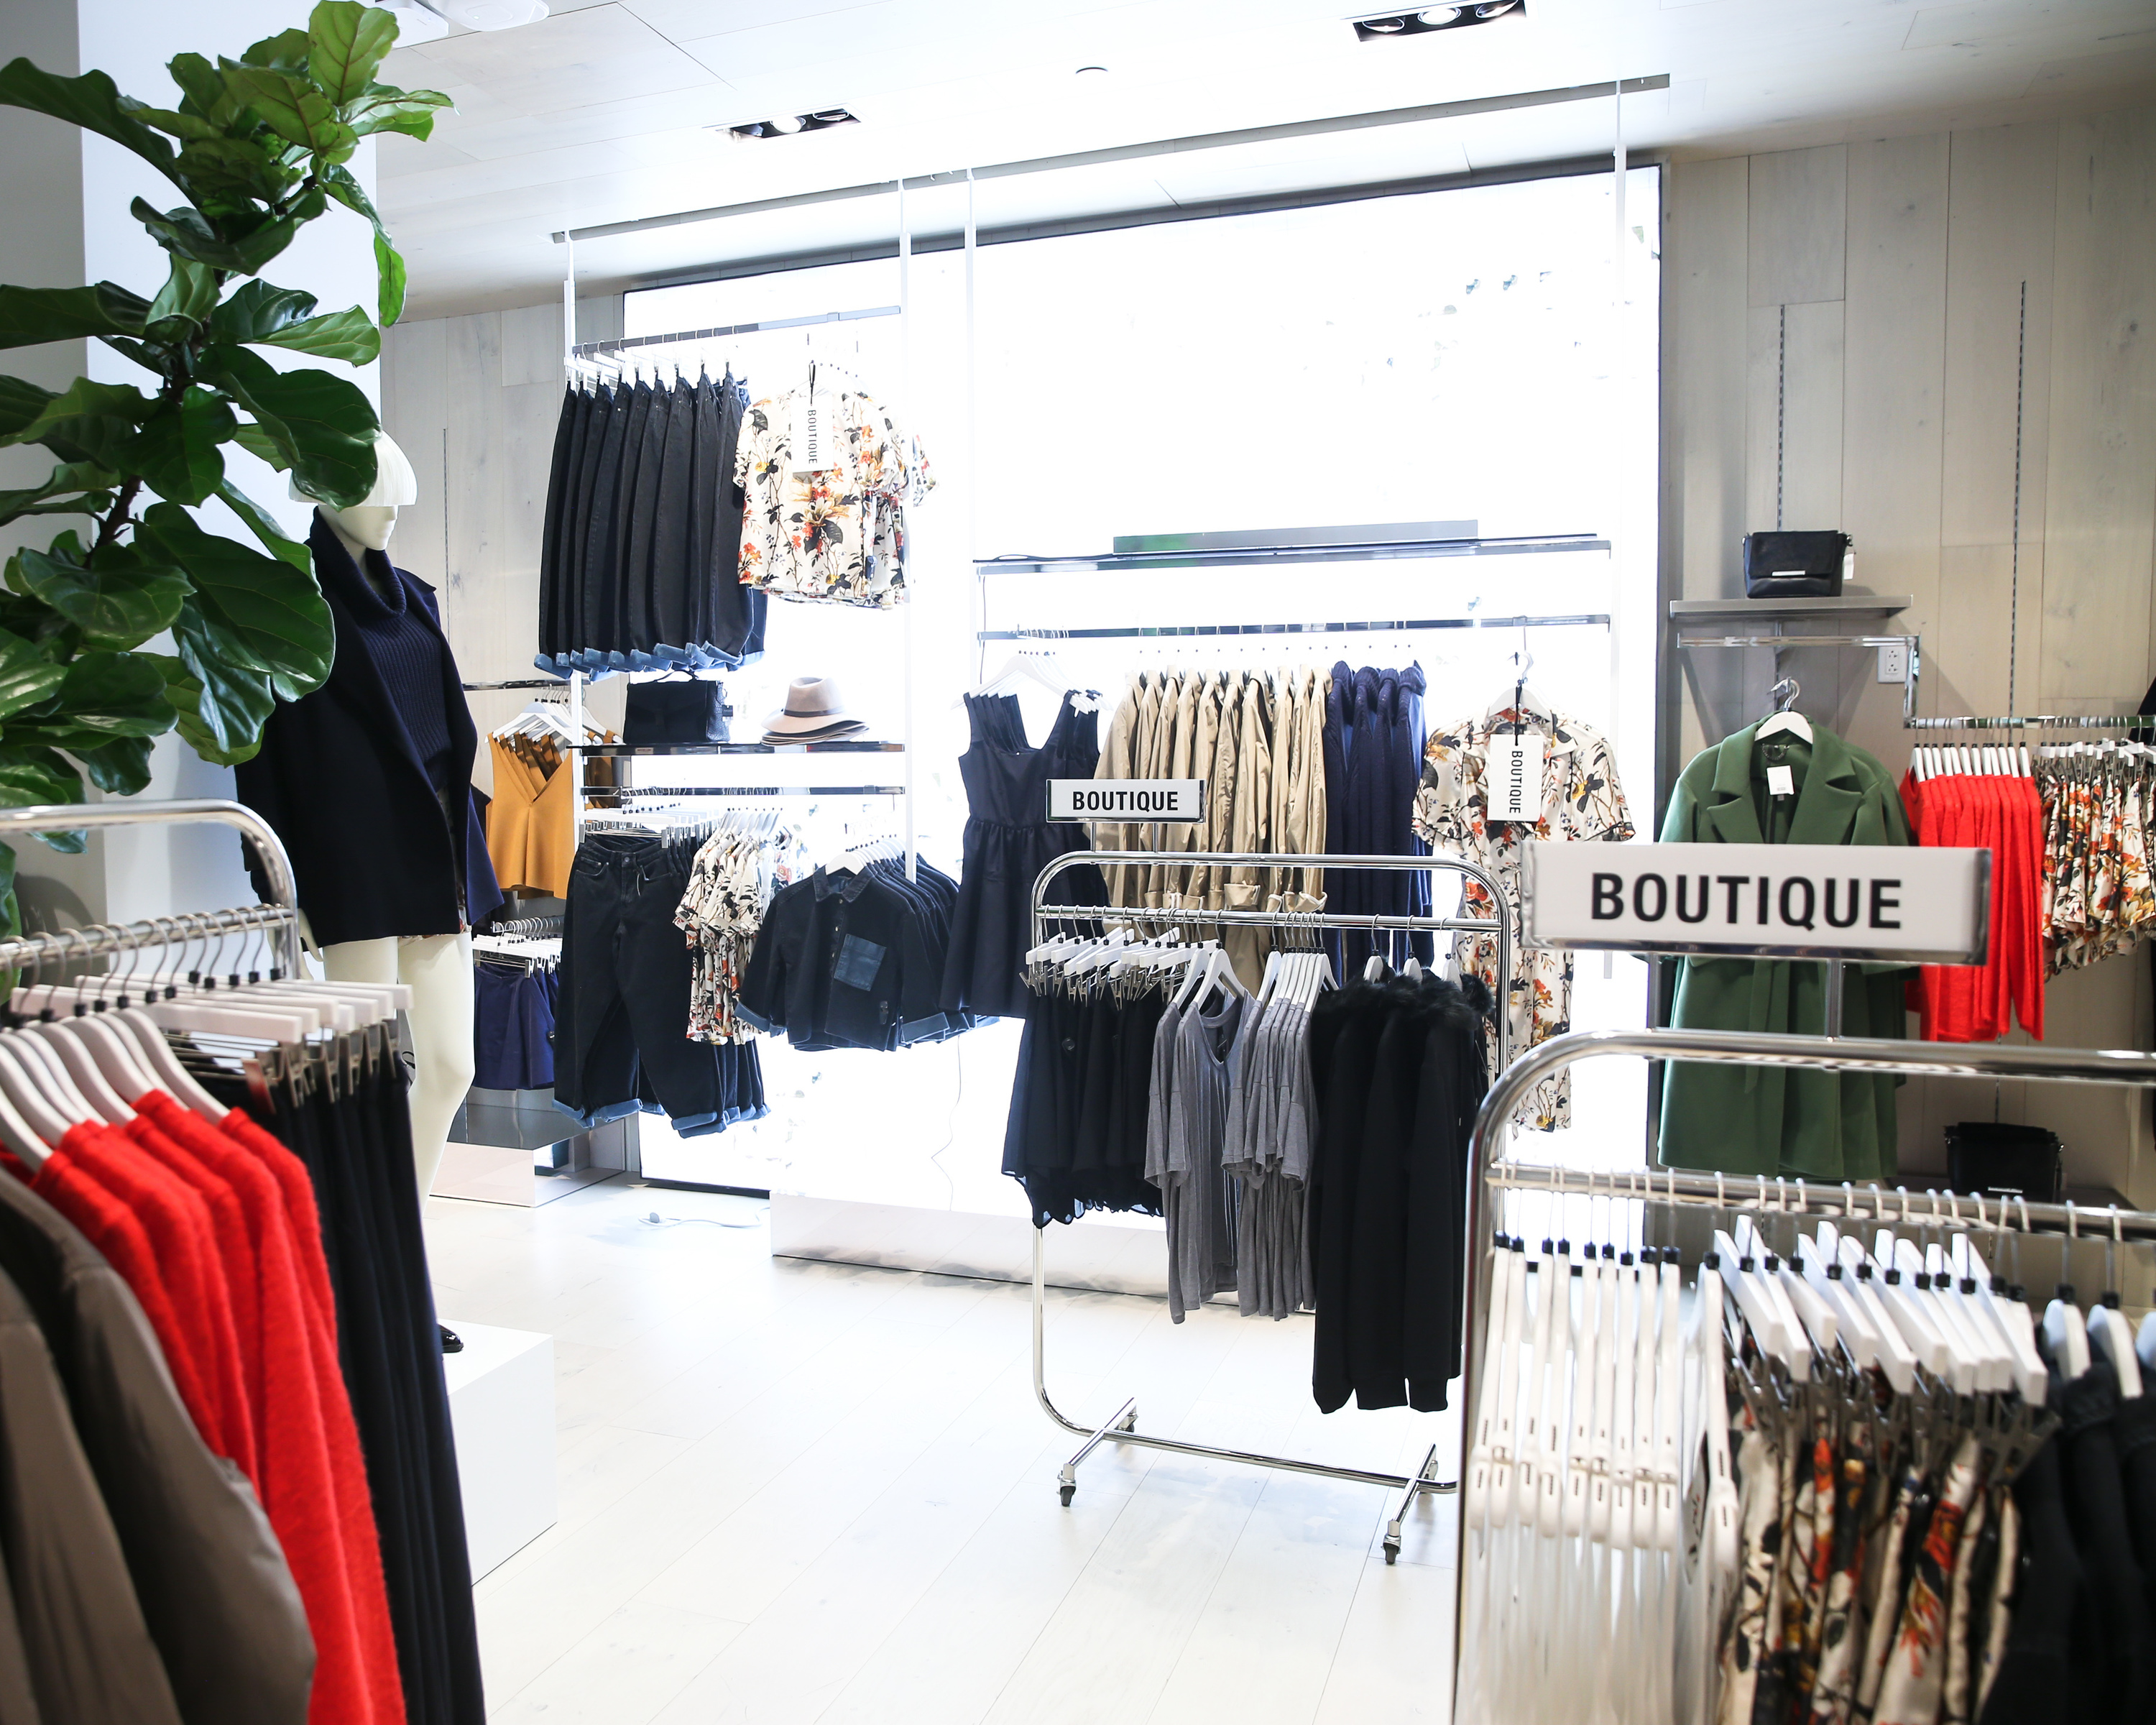 TOPSHOP/TOPMAN Fifth Avenue NYC flagship